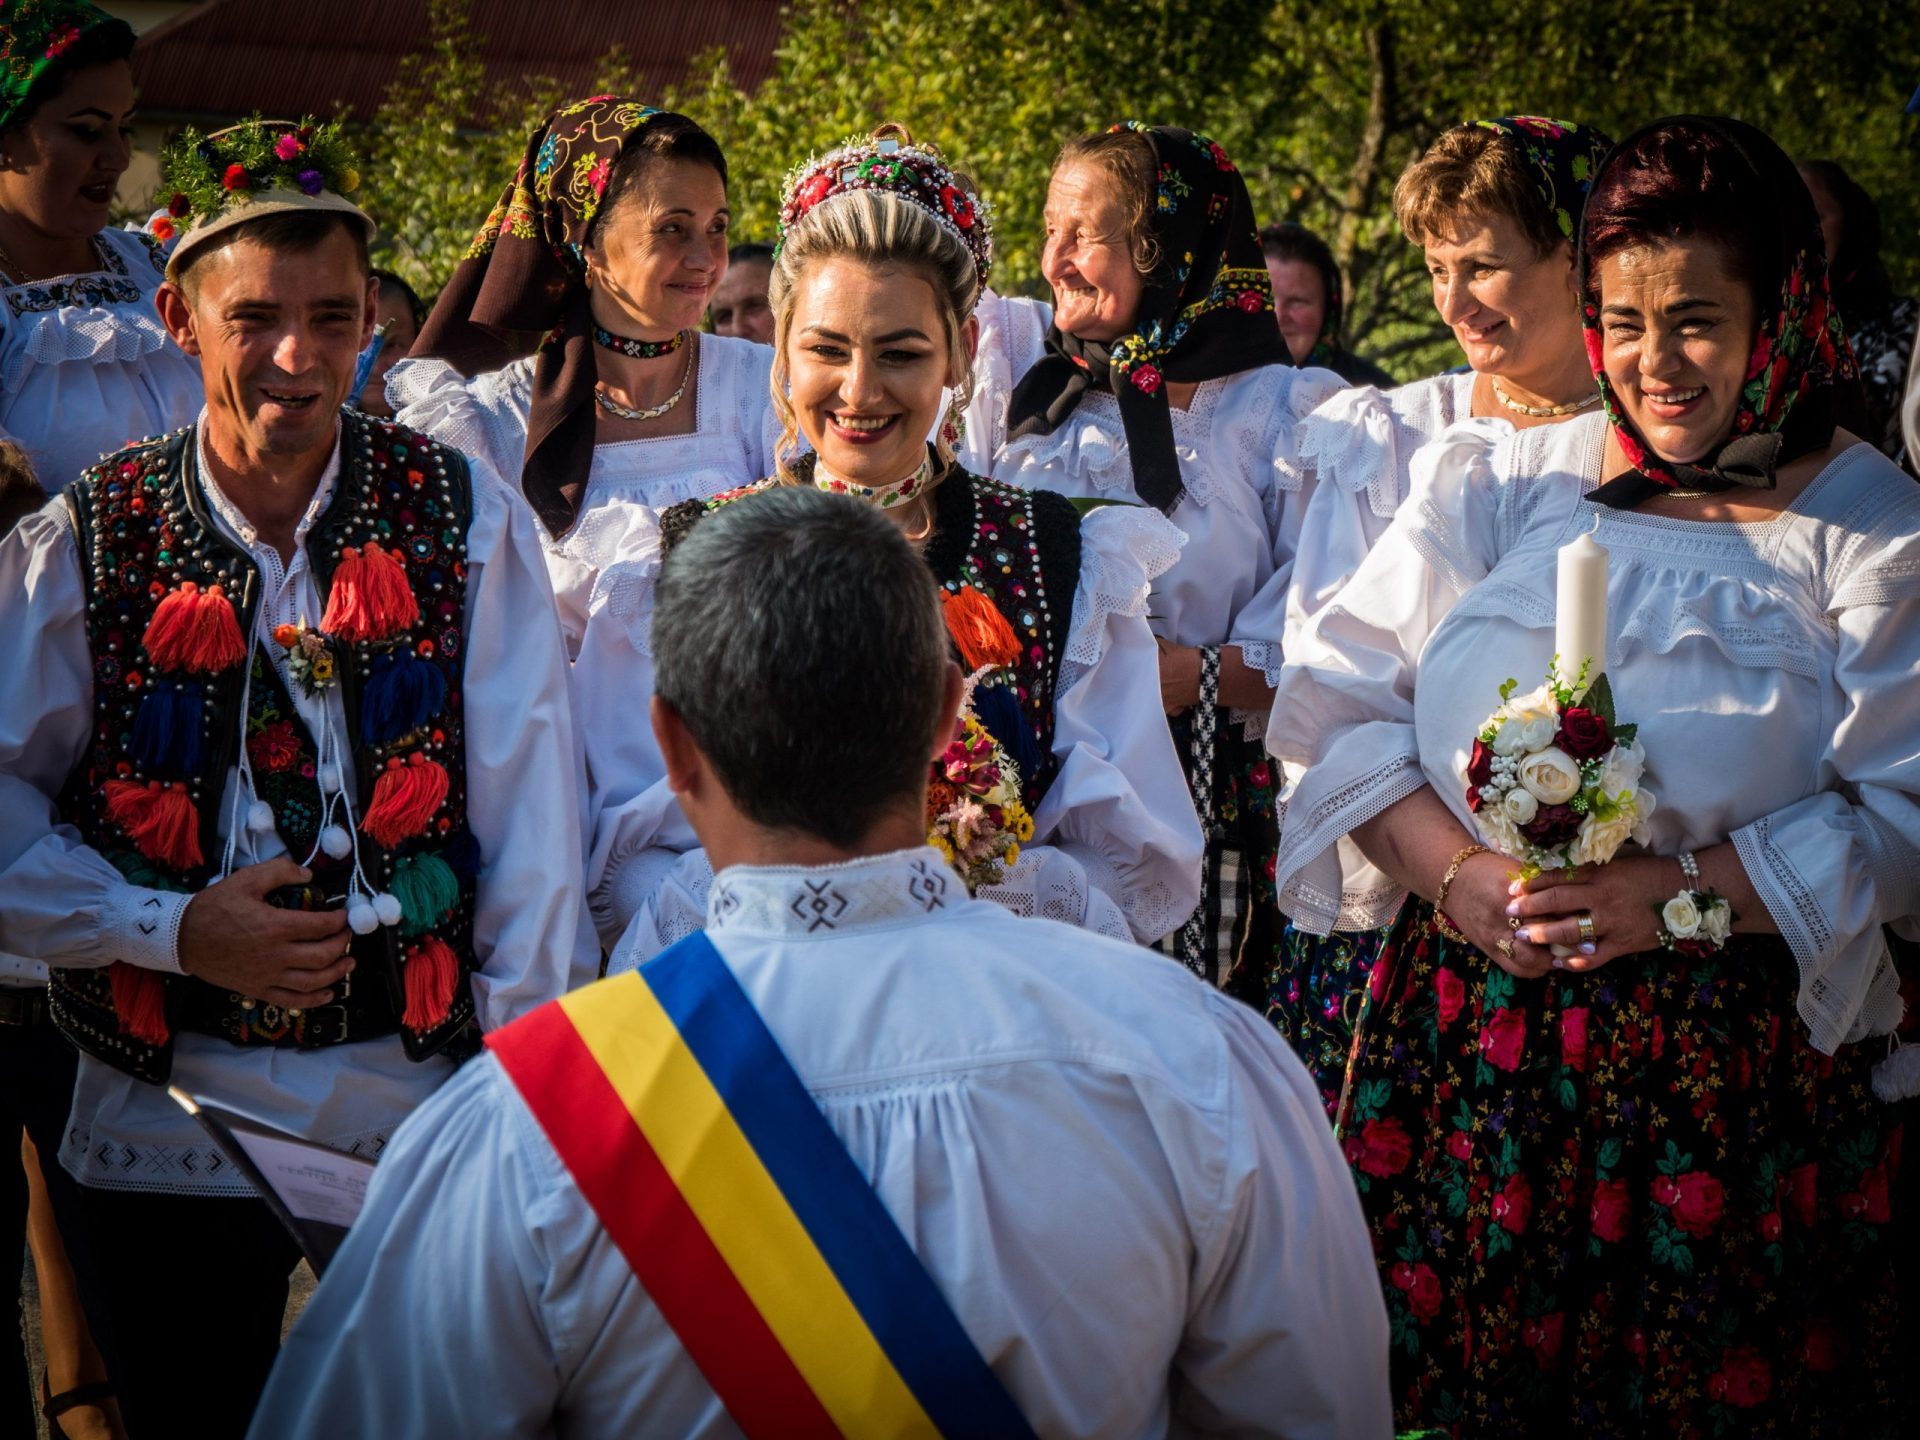 Proud to be Romanian - traditional wedding